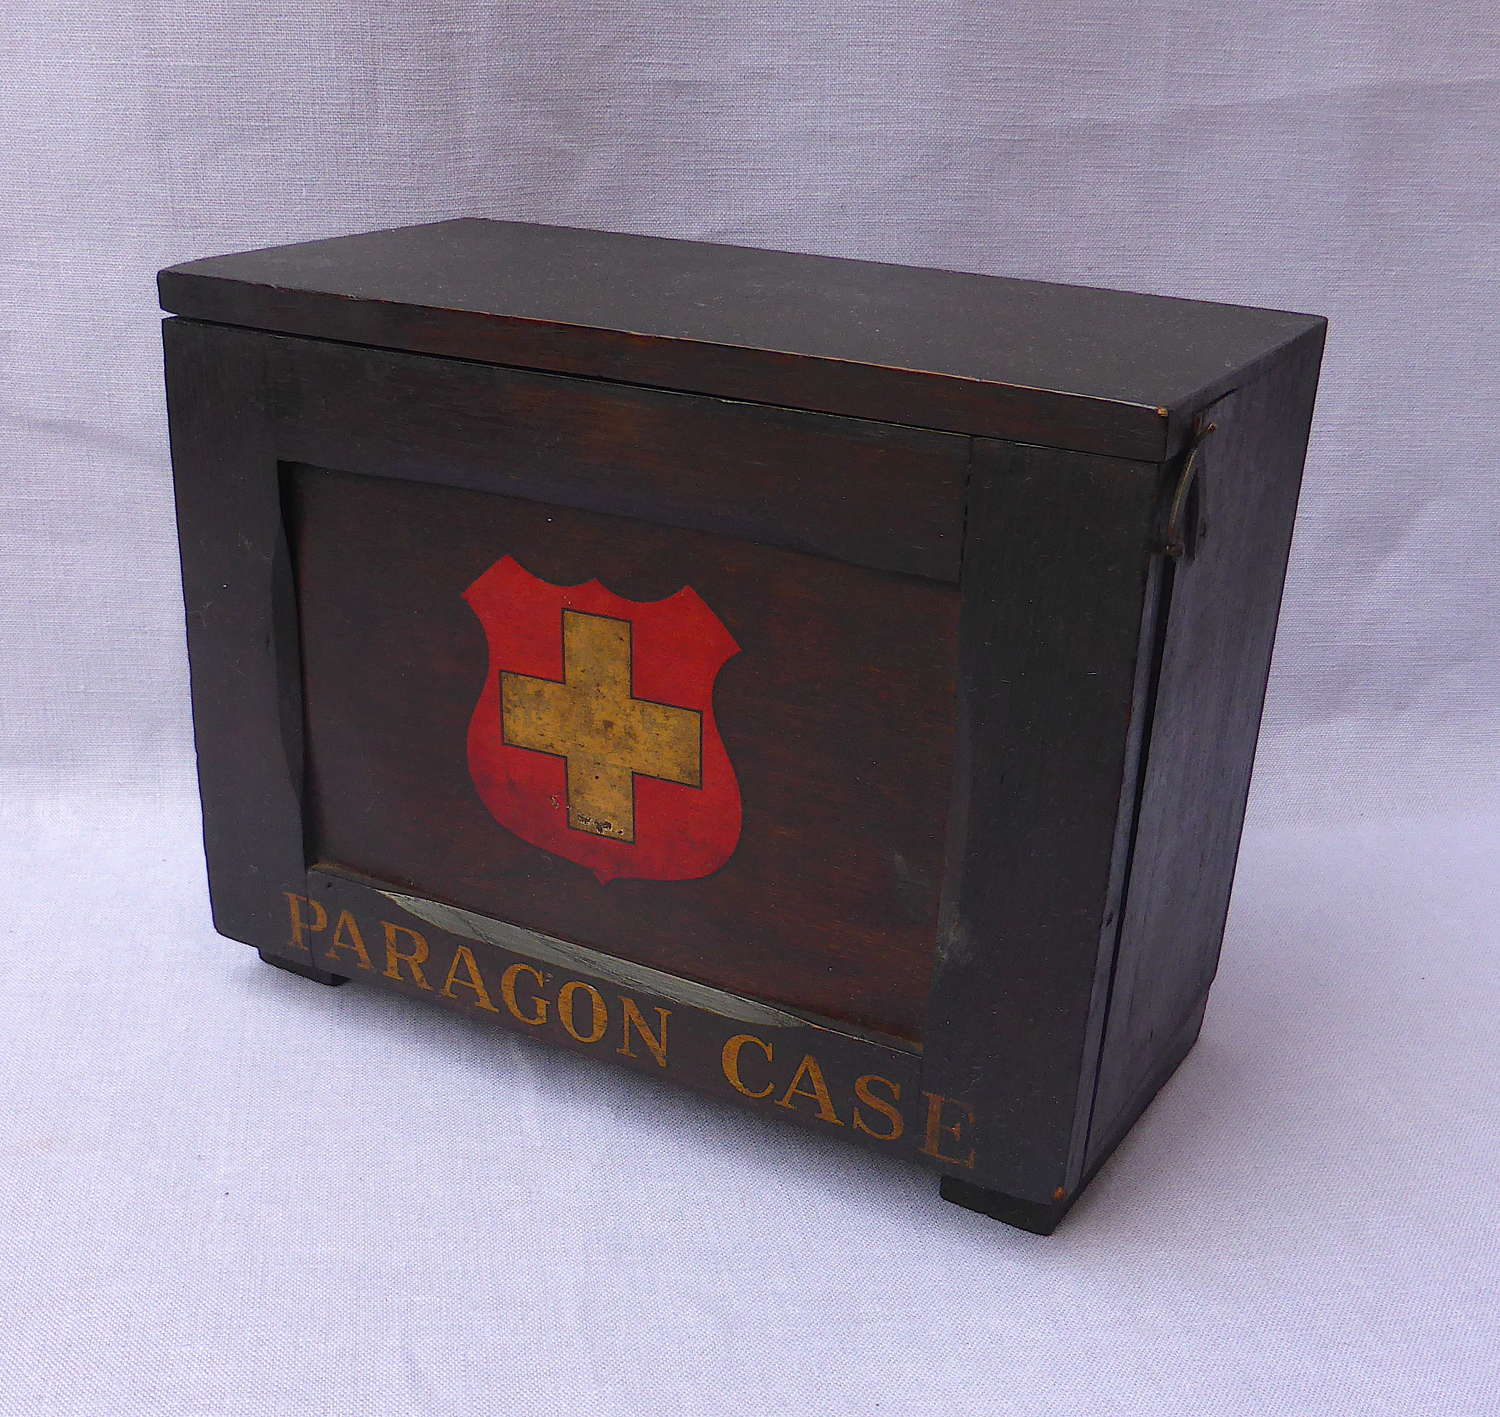 1920s Paragon Industrial First Aid Case